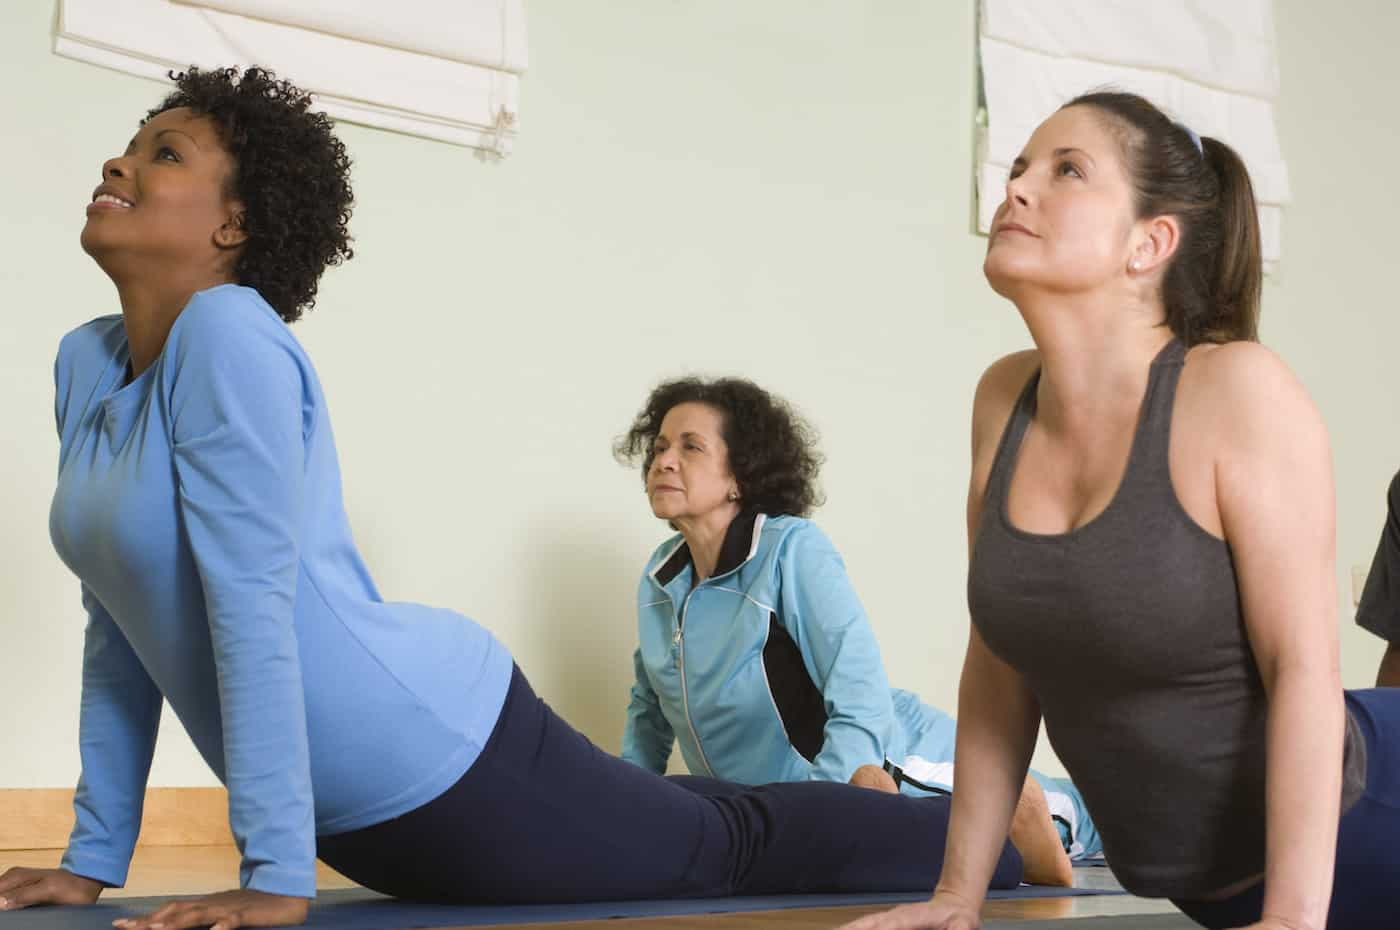 Yoga reduces stress and helps build your body's strength, flexibility, and endurance.